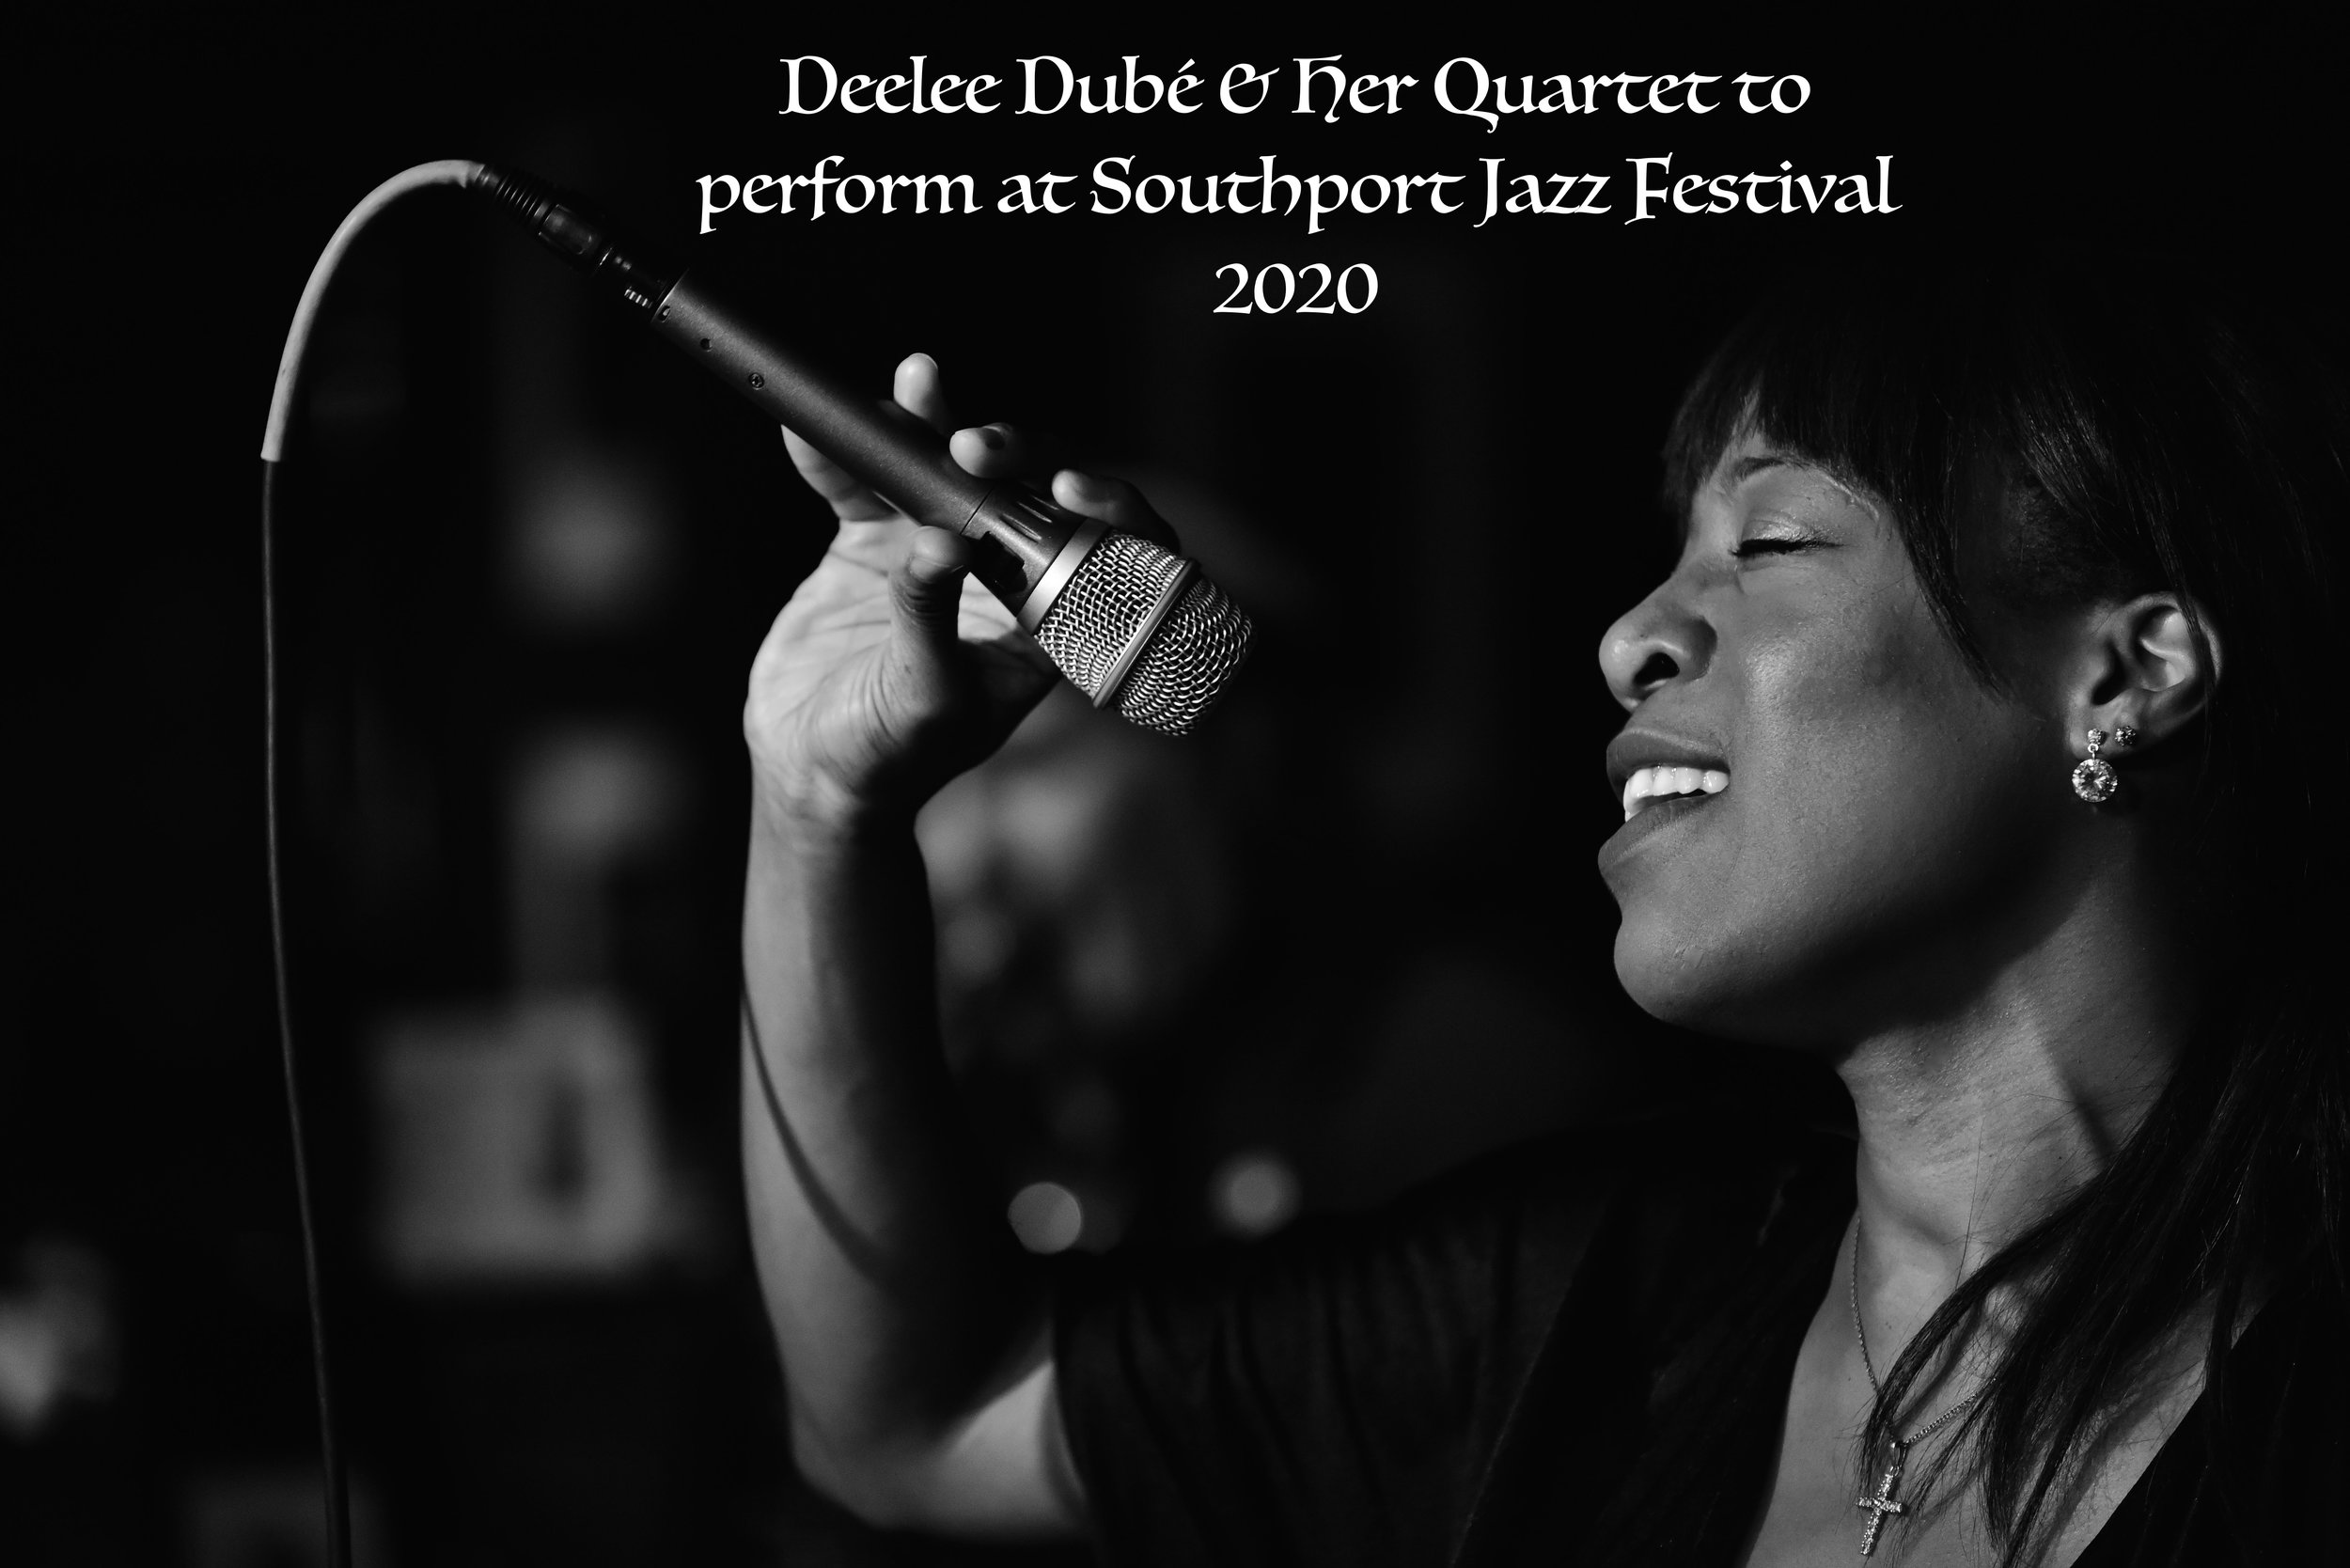 Deelee Dubé & Her Quartet to perform at Southport Jazz Festival 2020